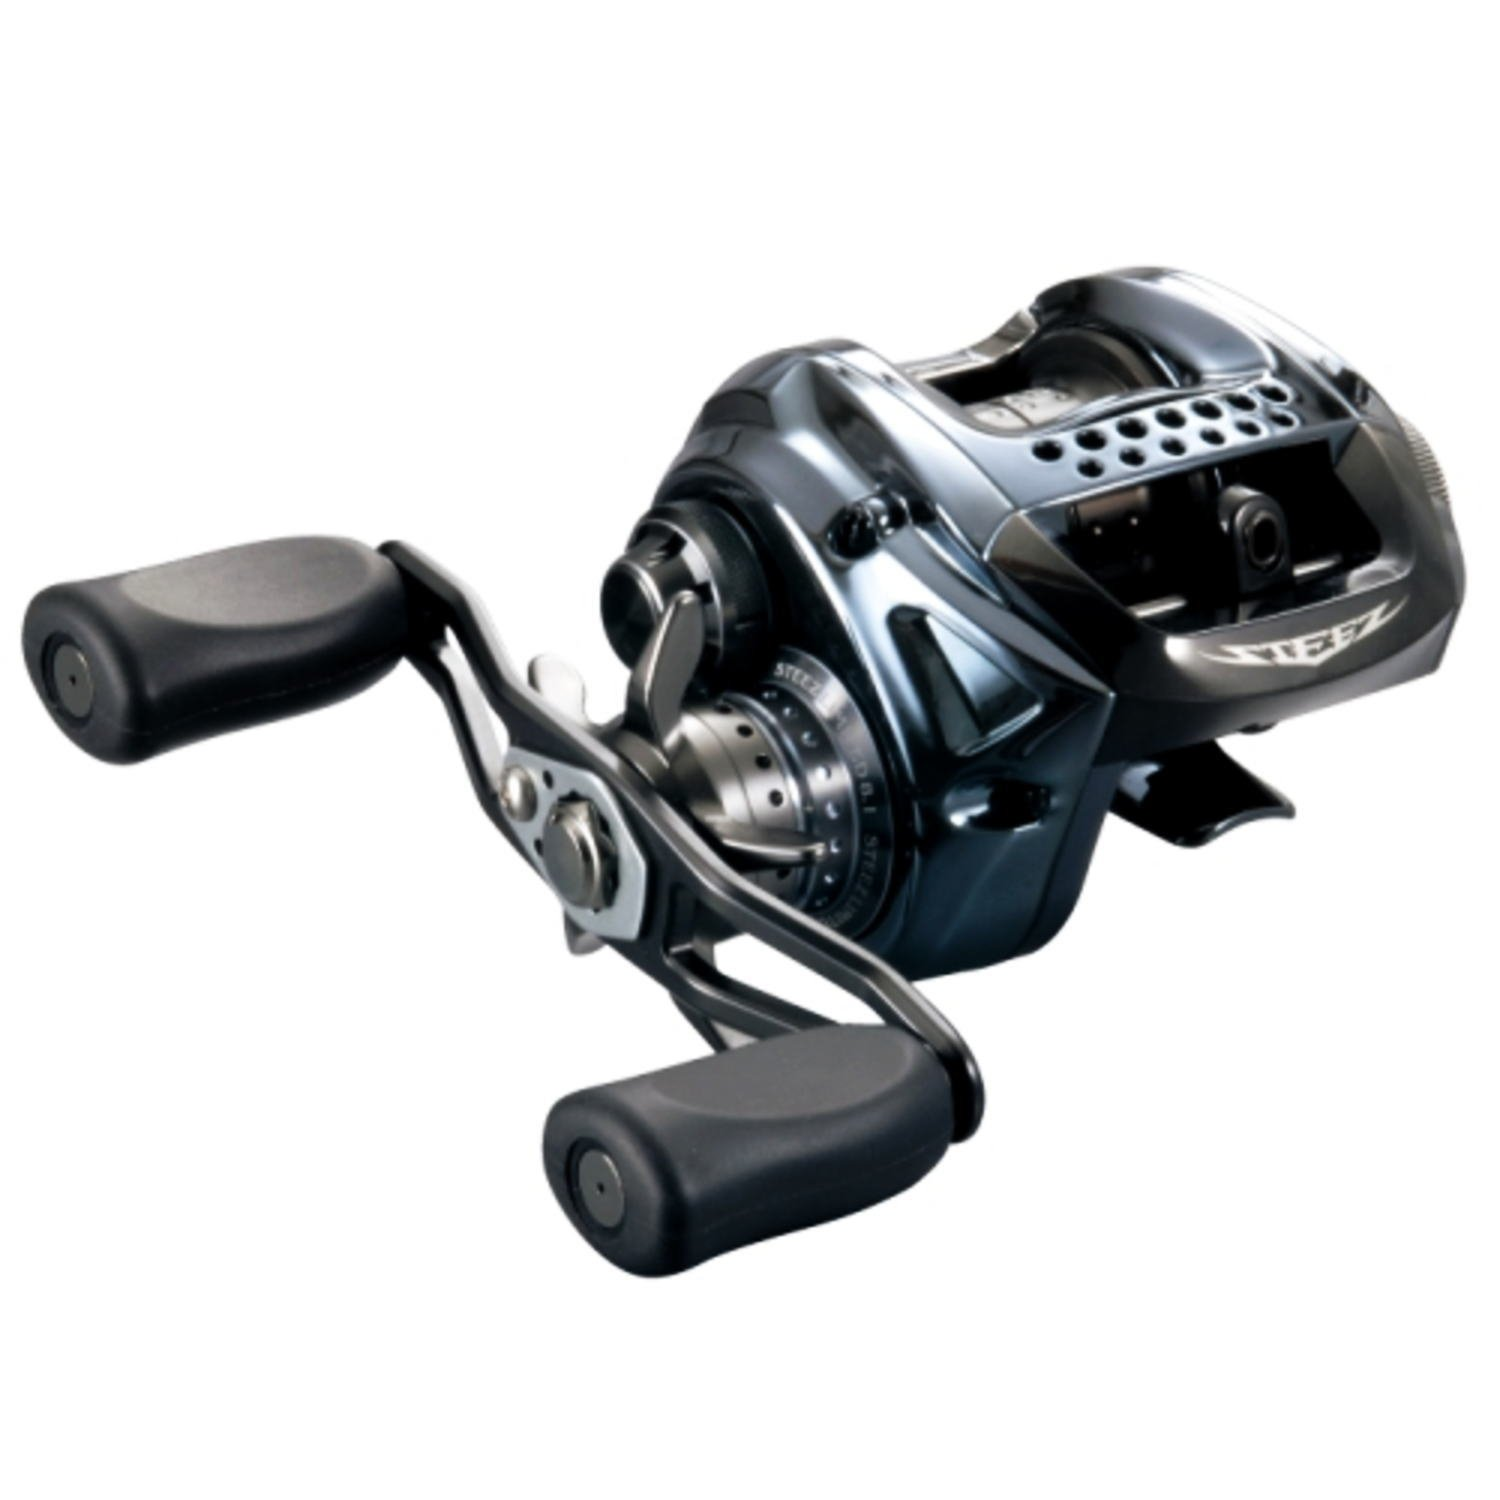 Daiwa 14 Steez Limited SV 105XH Right Hand Baitcasting Reel by DAIWA